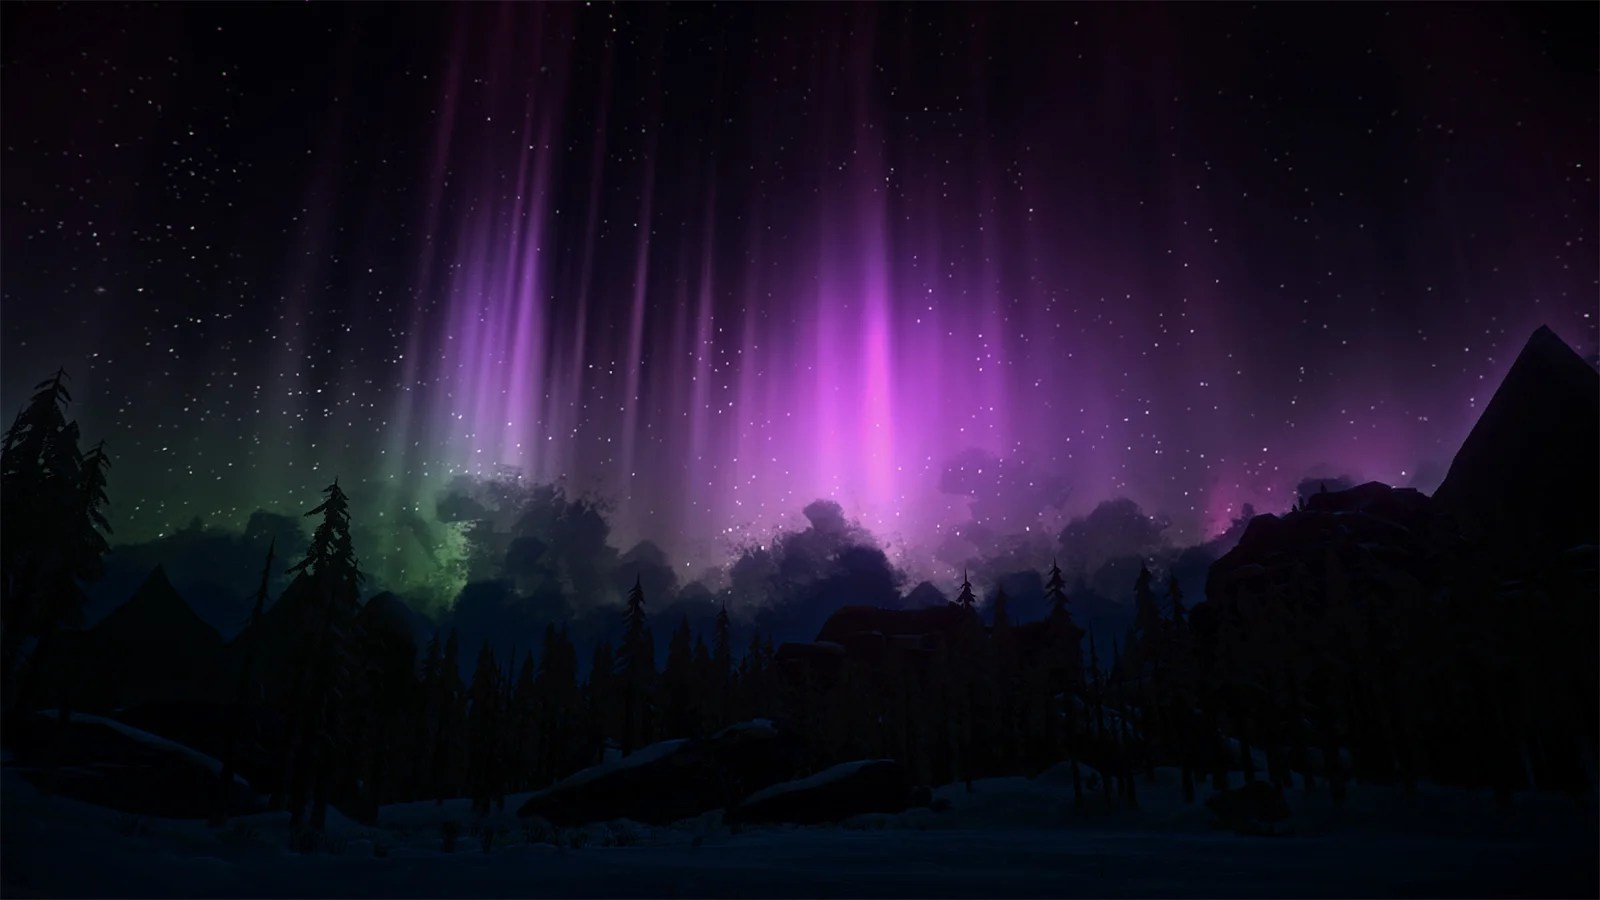 Desktop Wallpaper Fall Out The Long Dark Playstation 4 Review Hinterland Who S Who